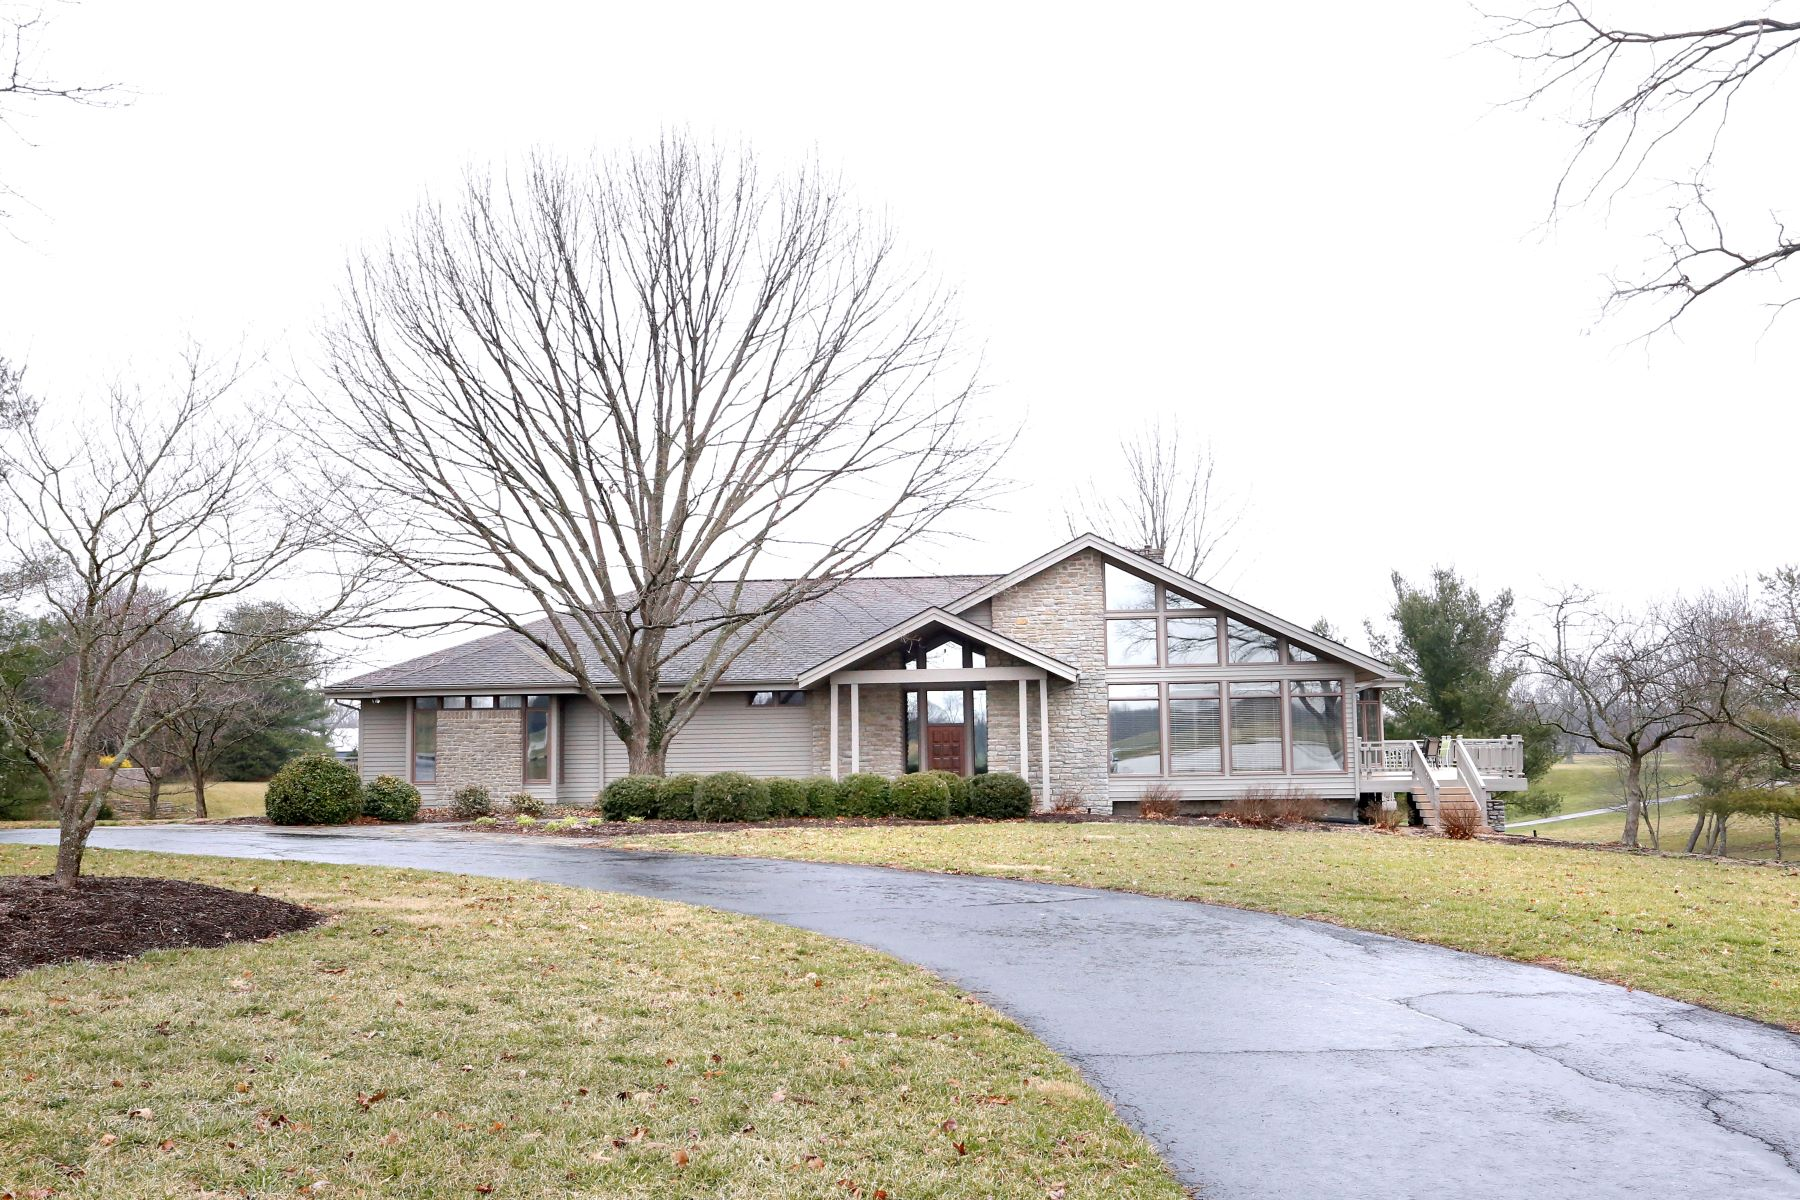 Single Family Home for Sale at 7 Avenue of Champions 7 Avenue of Champions Nicholasville, Kentucky 40356 United States